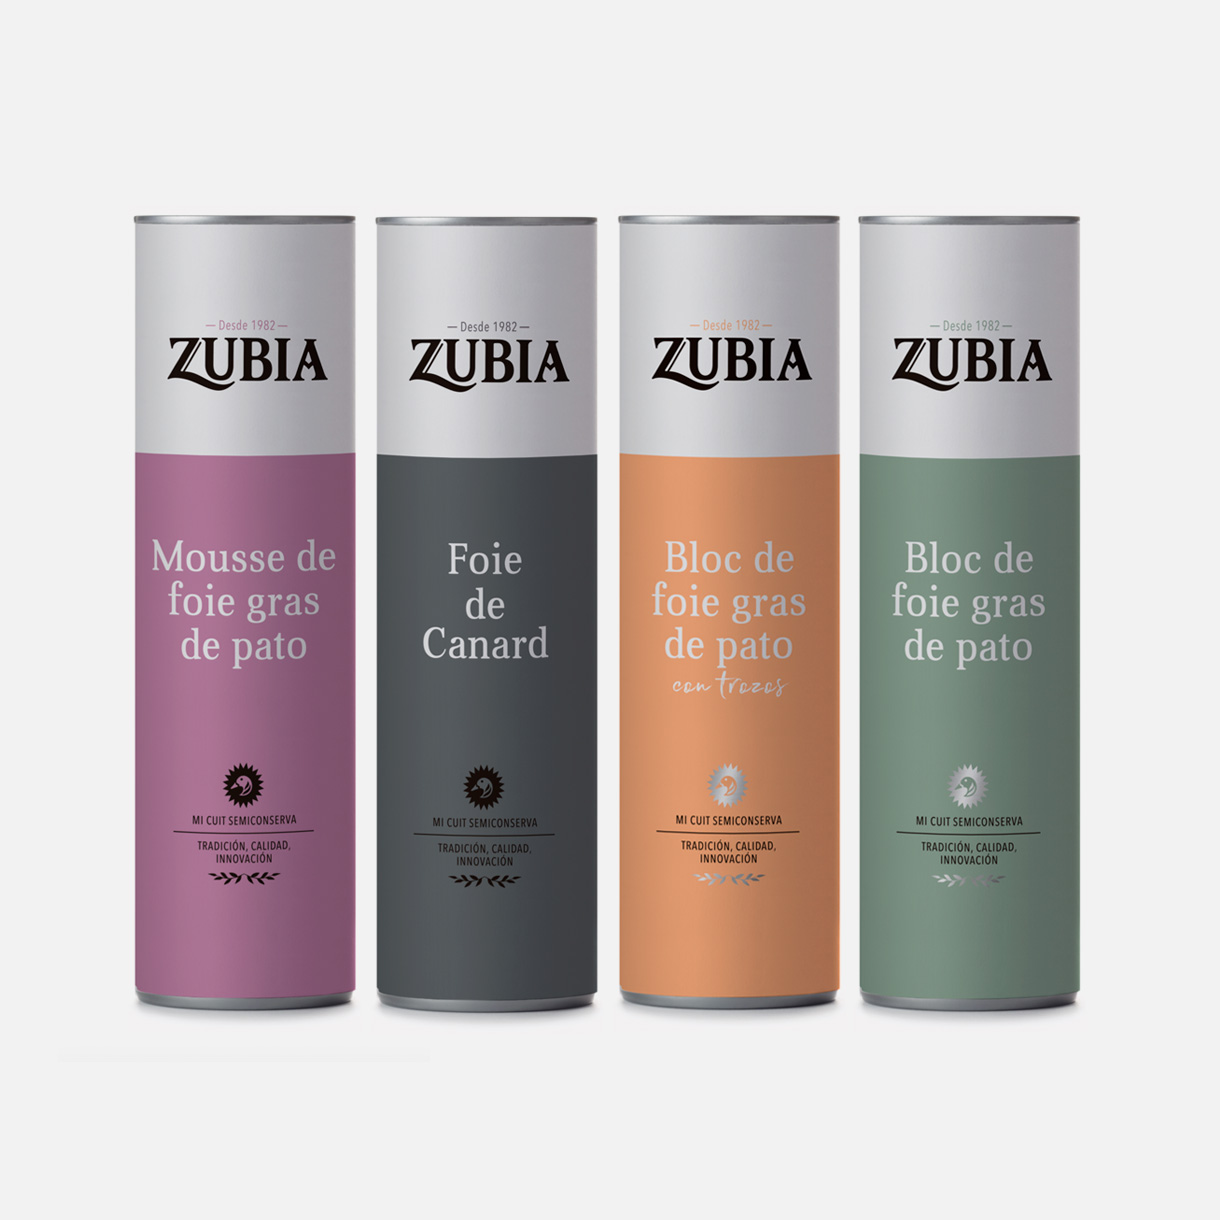 Patés Zubia, packaging